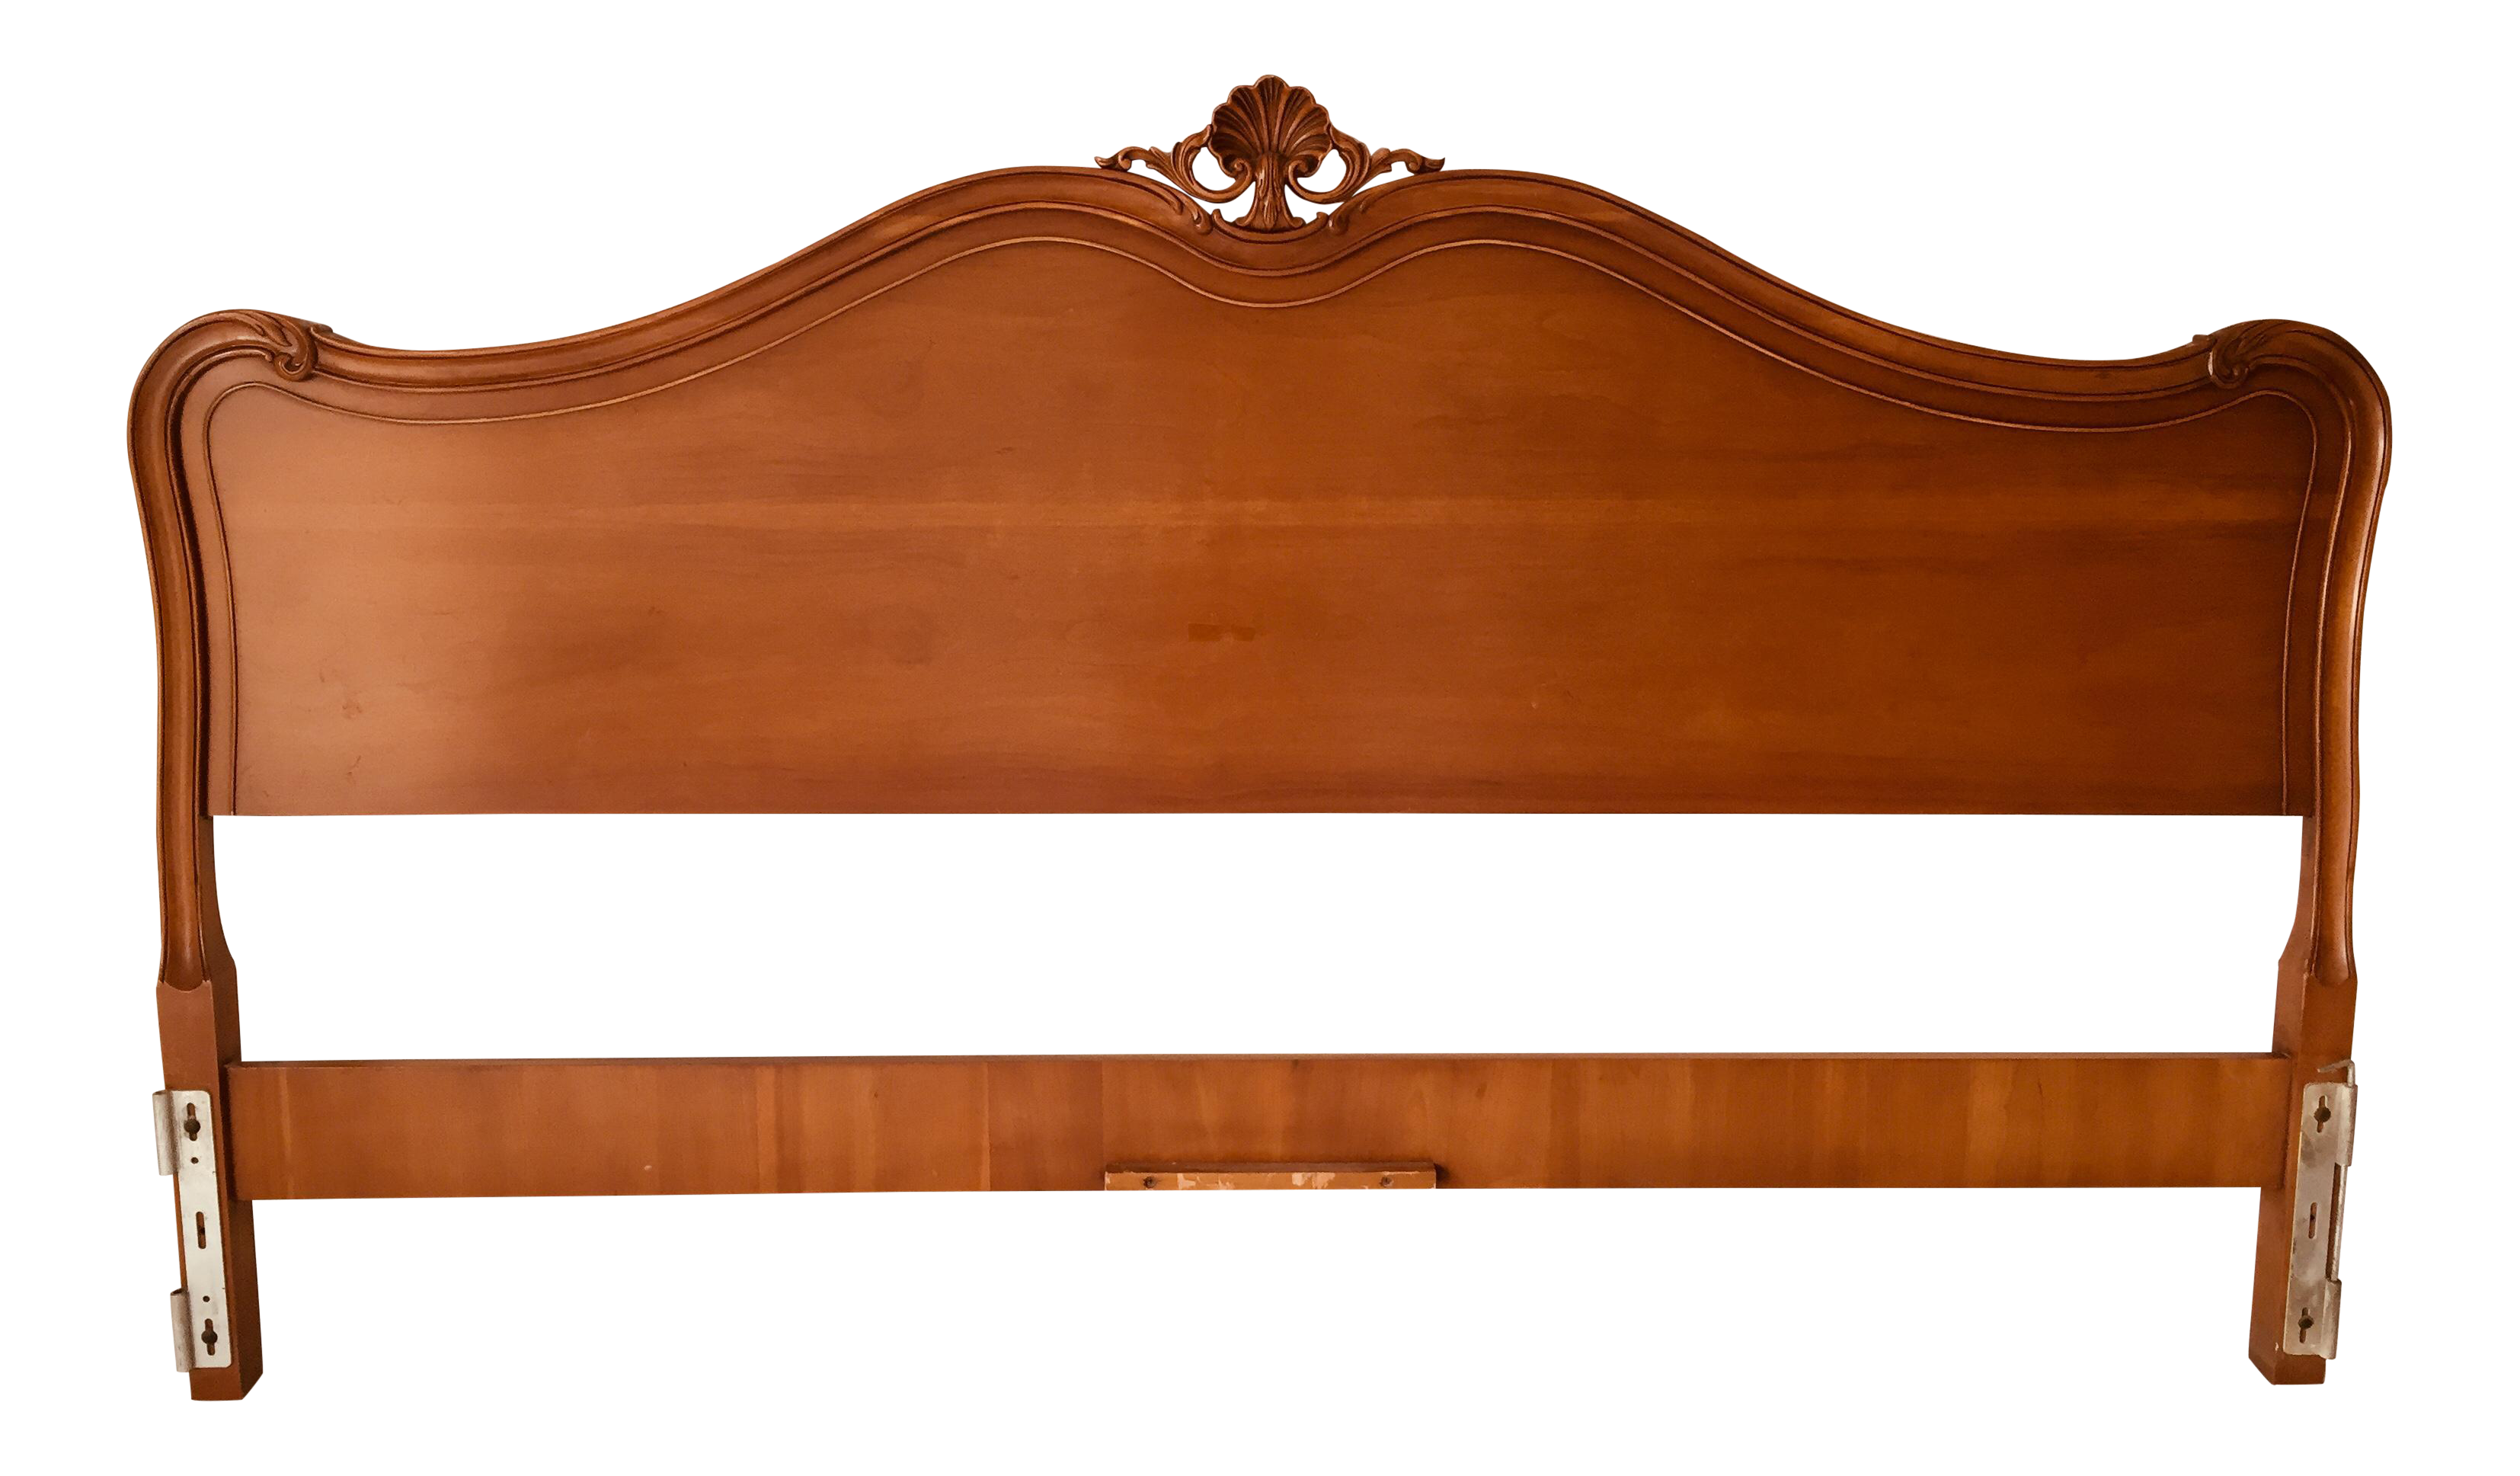 Drexel French Style Cherry Wood King Size Headboard On Chairish Com Headboard King Size Headboard Cherry Wood